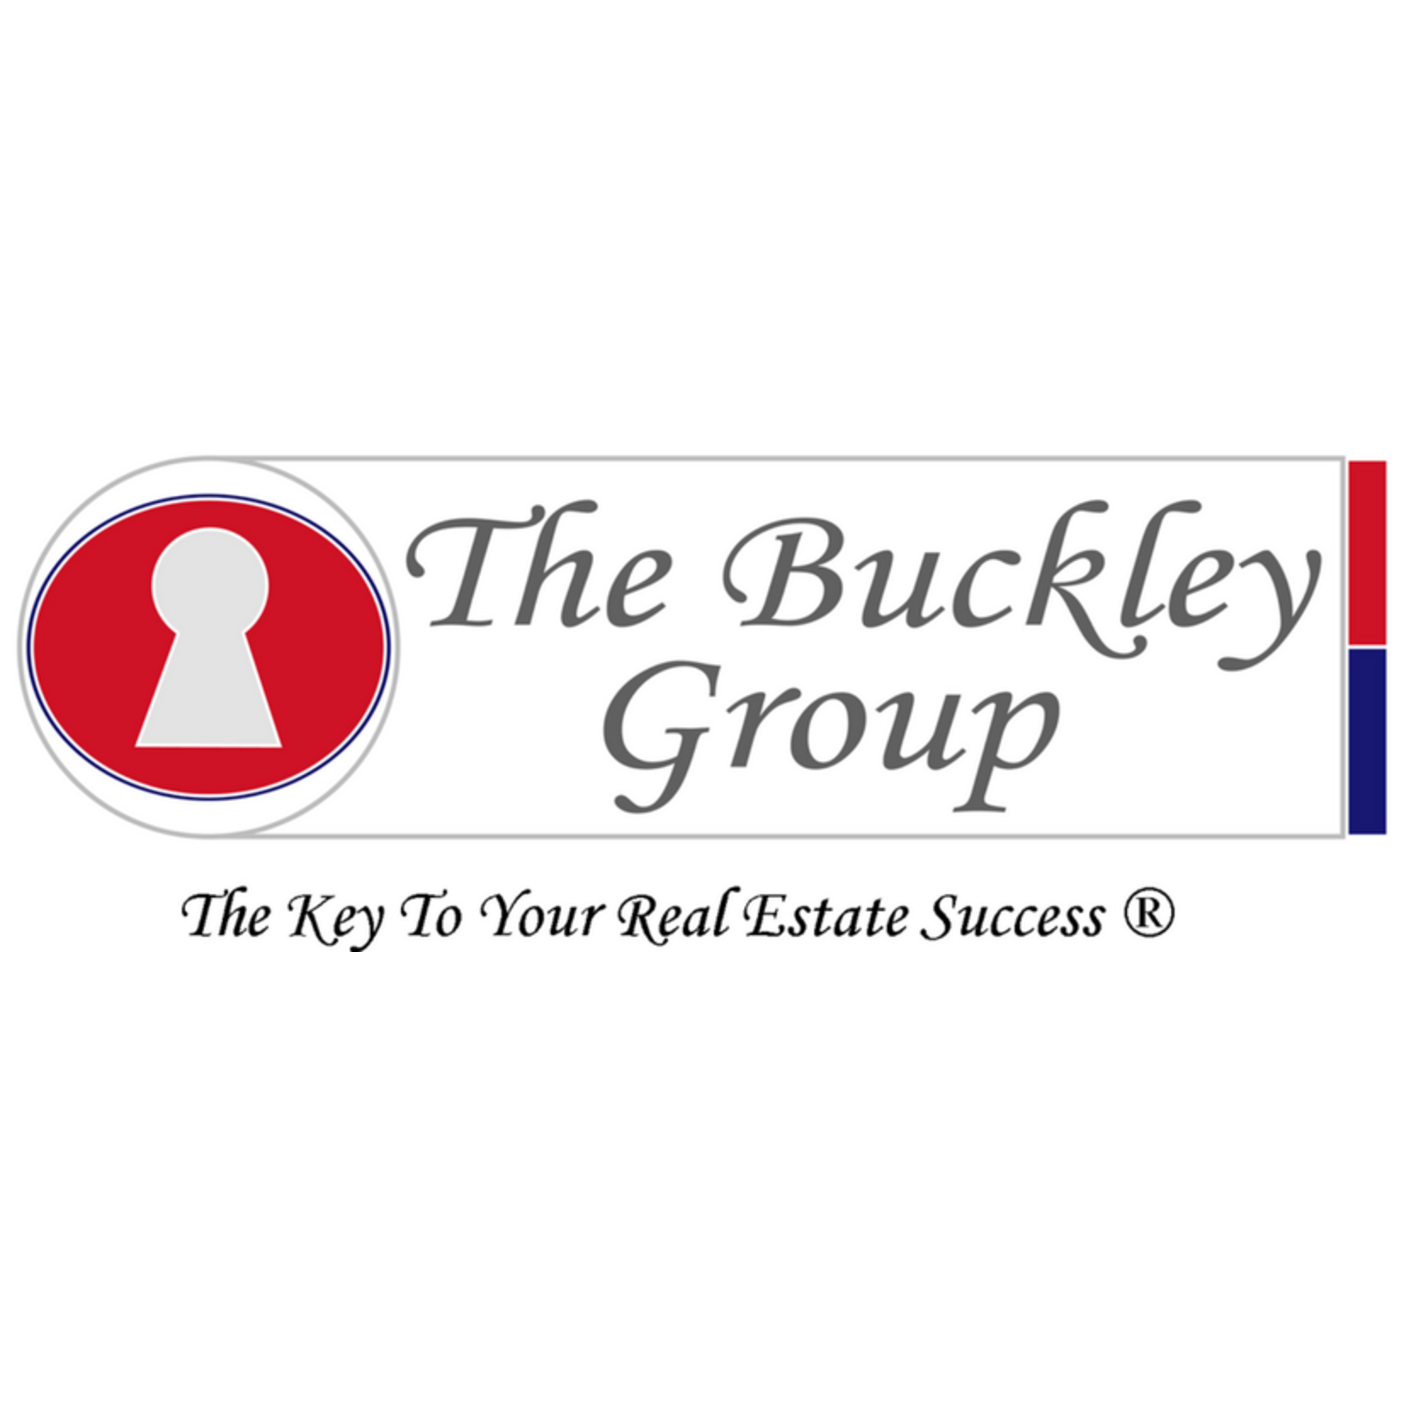 The Buckley Group at Long & Foster